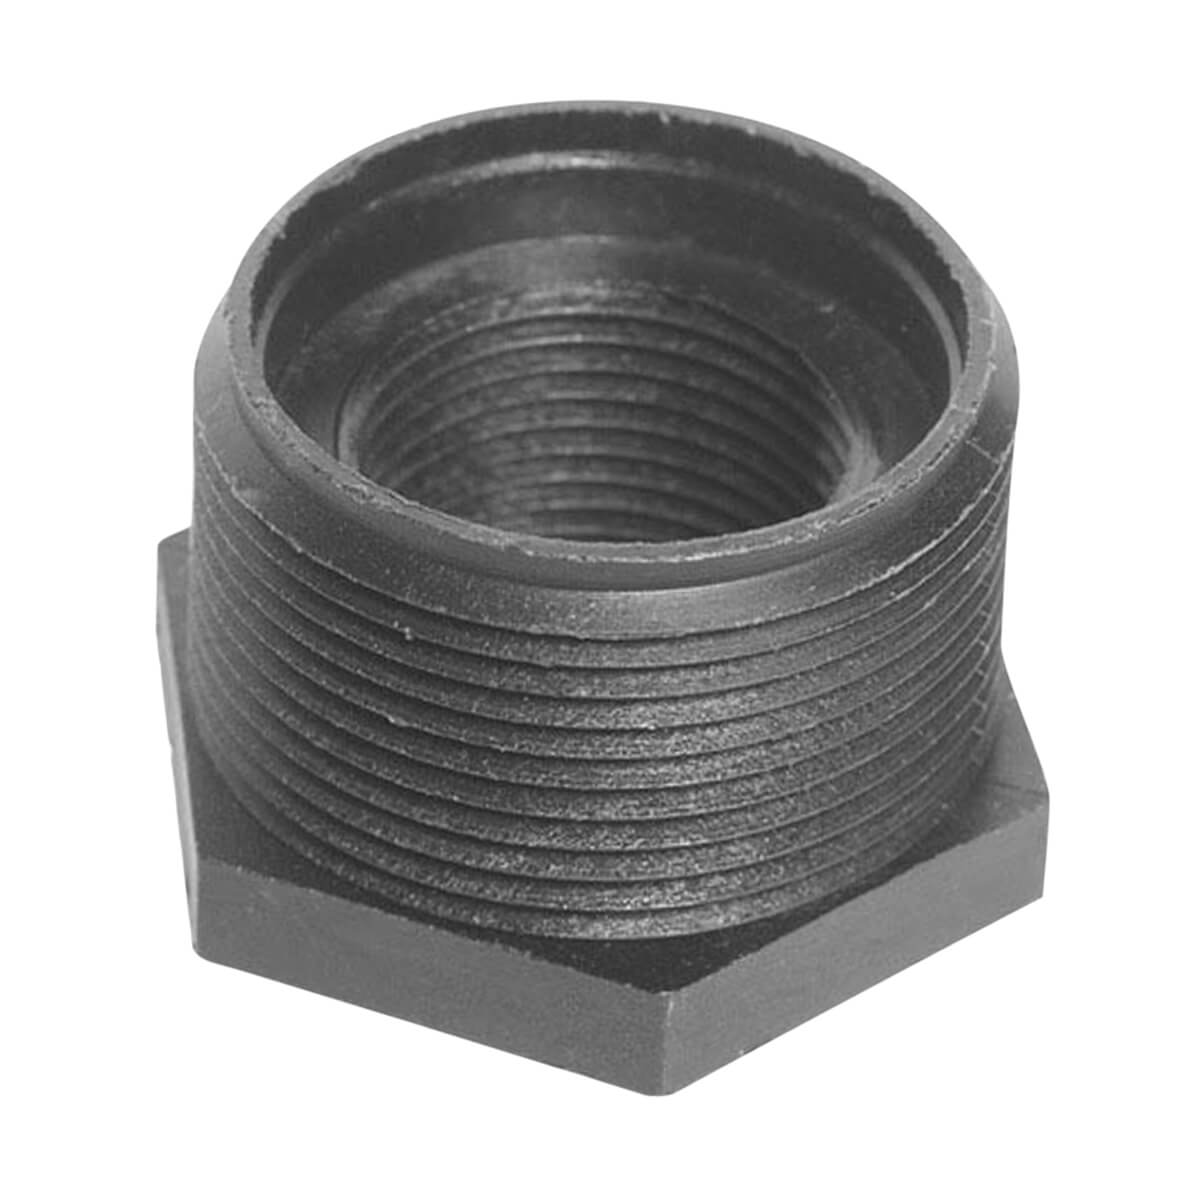 "Reducer Bushings MPT x FPT - 1-1/4"" x 1"""